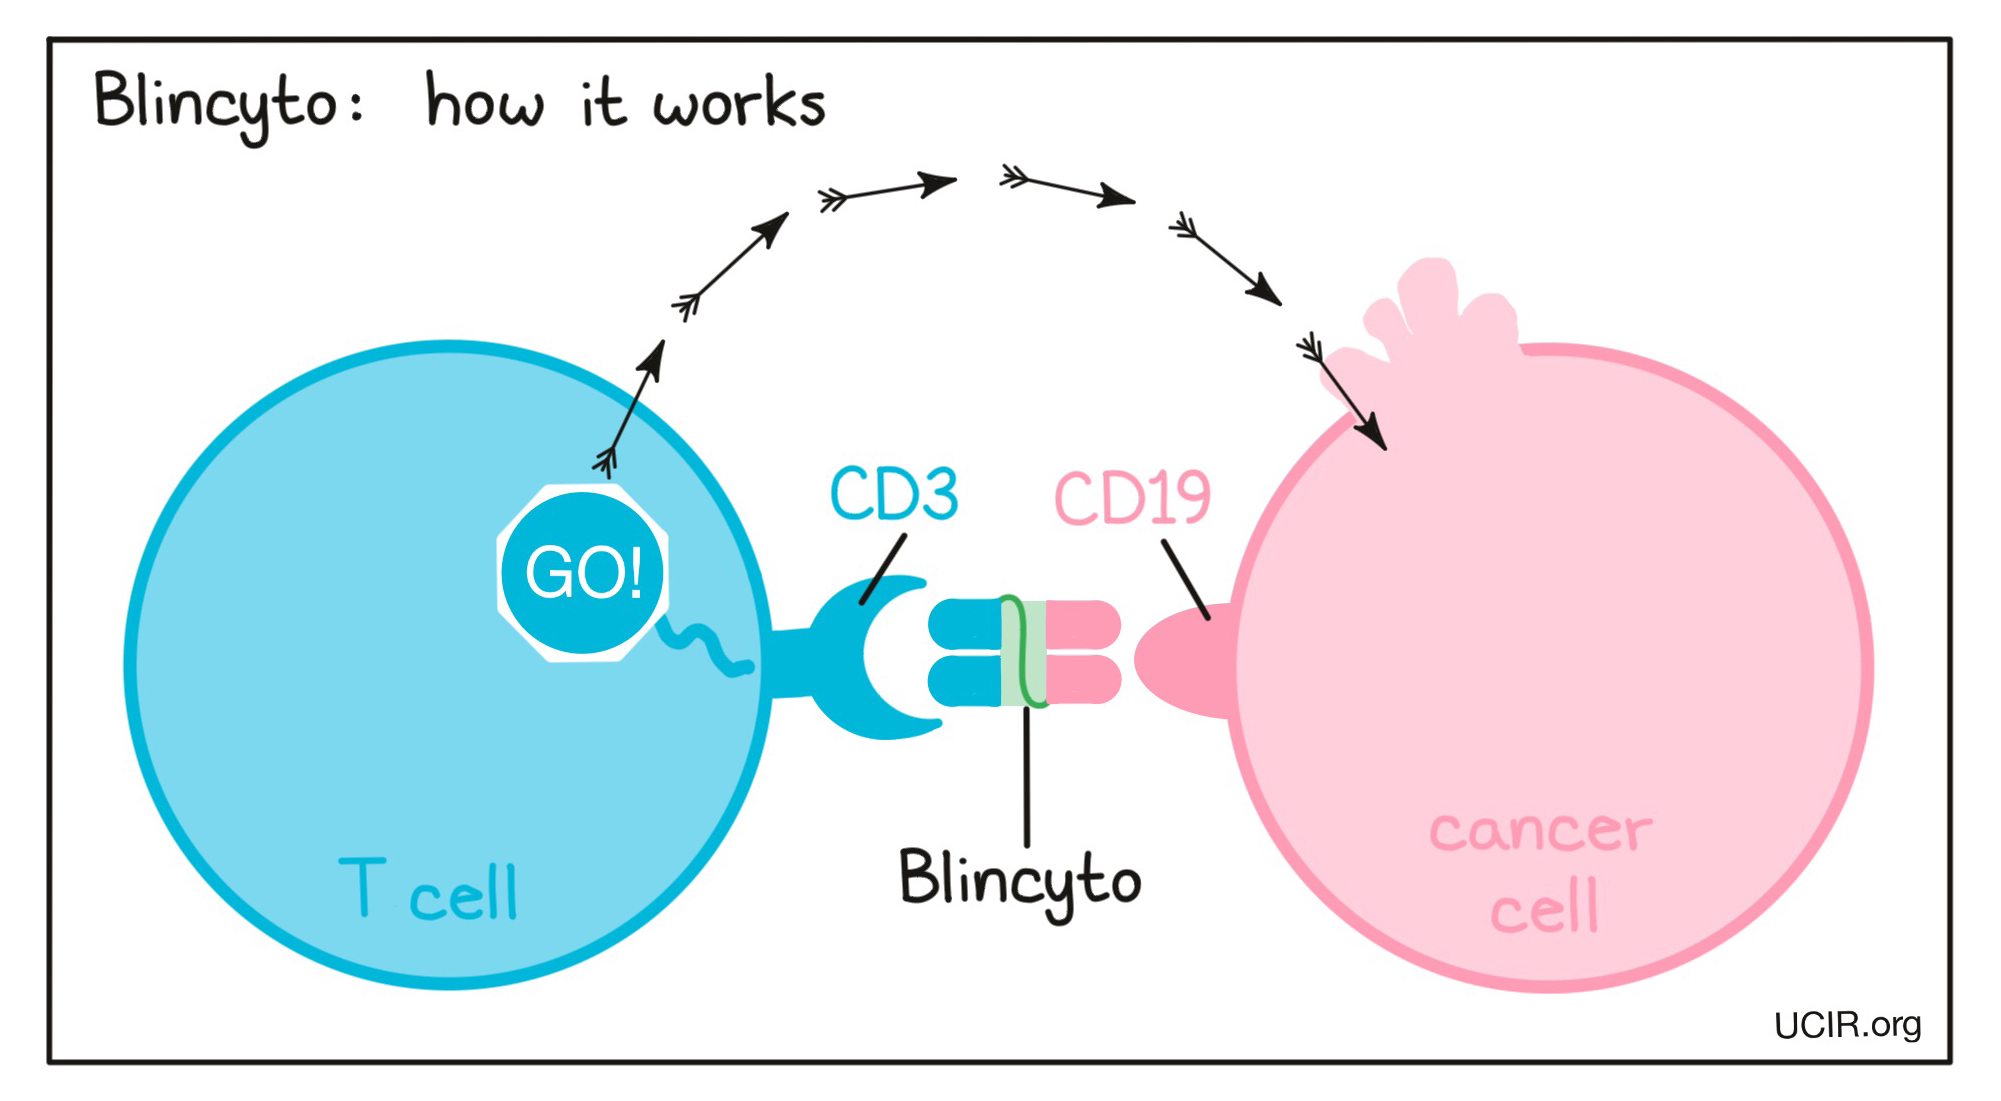 Illustration that shows how Blincyto works